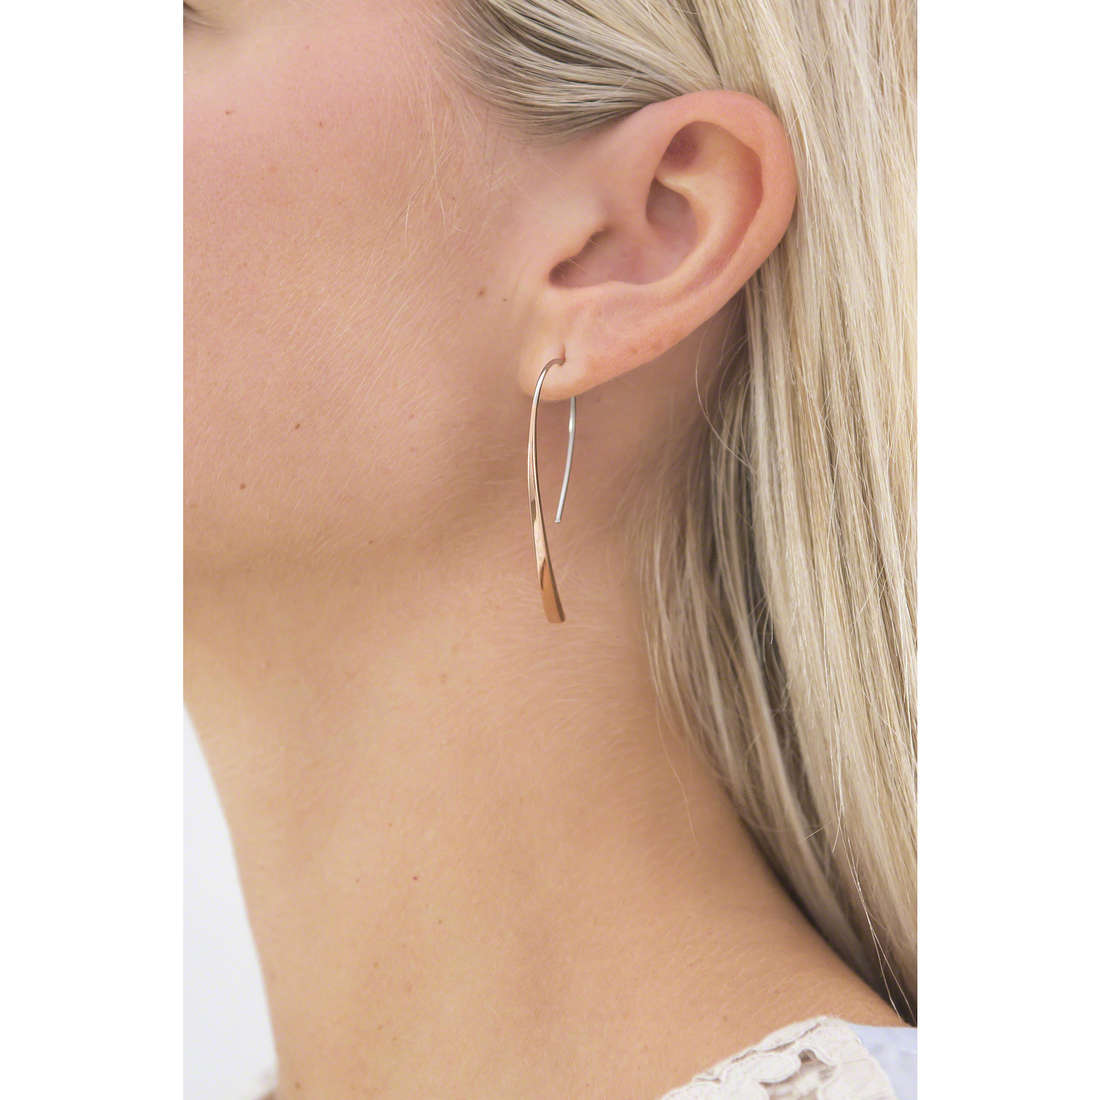 Fossil boucles d'oreille Spring 15 femme JF01703791 indosso